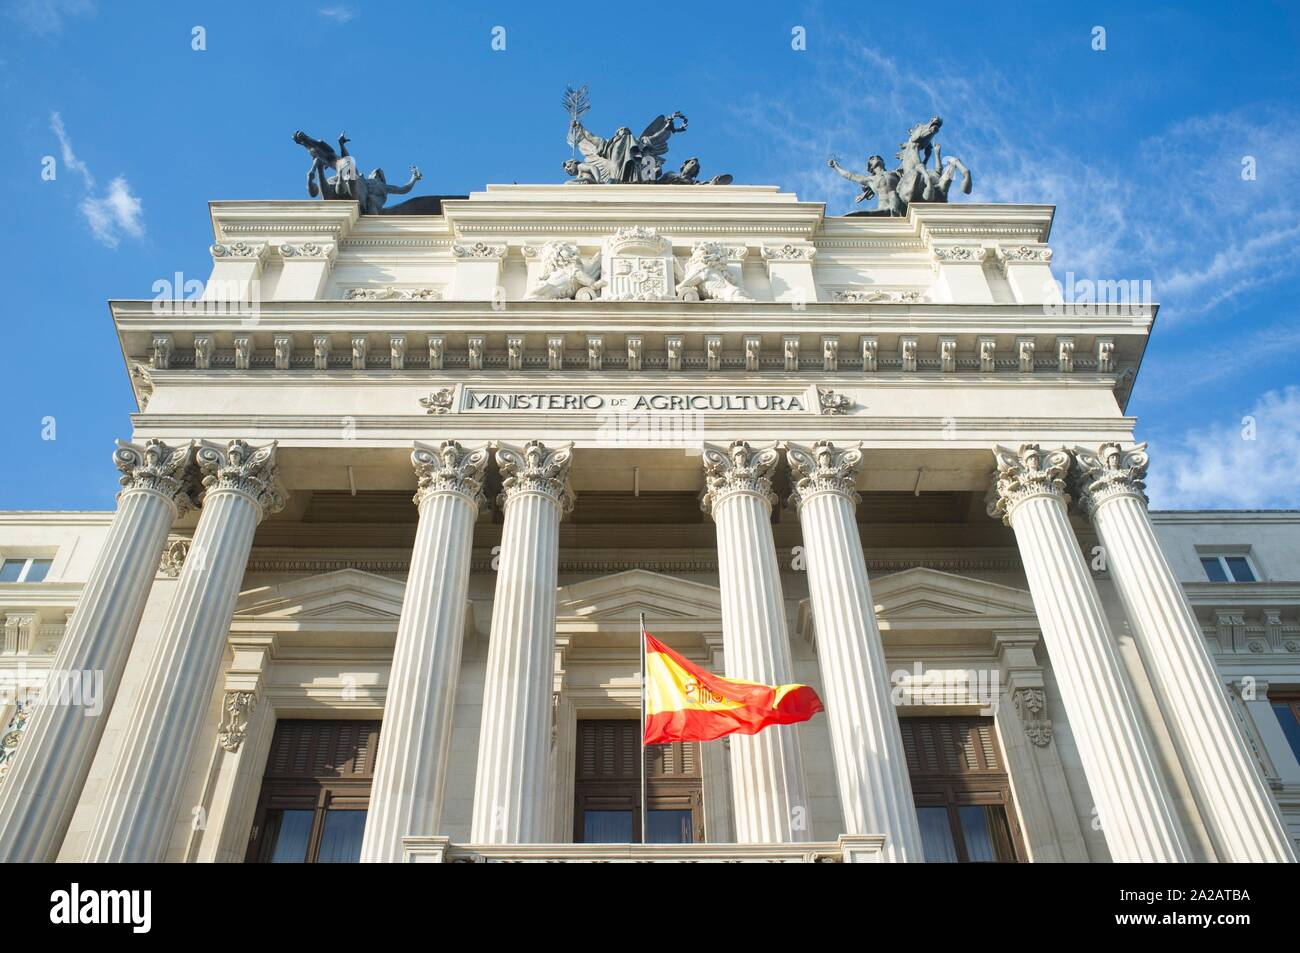 Ministry of Agriculture Building. Spanish Government Department. Madrid is the capital of Spain. Stock Photo